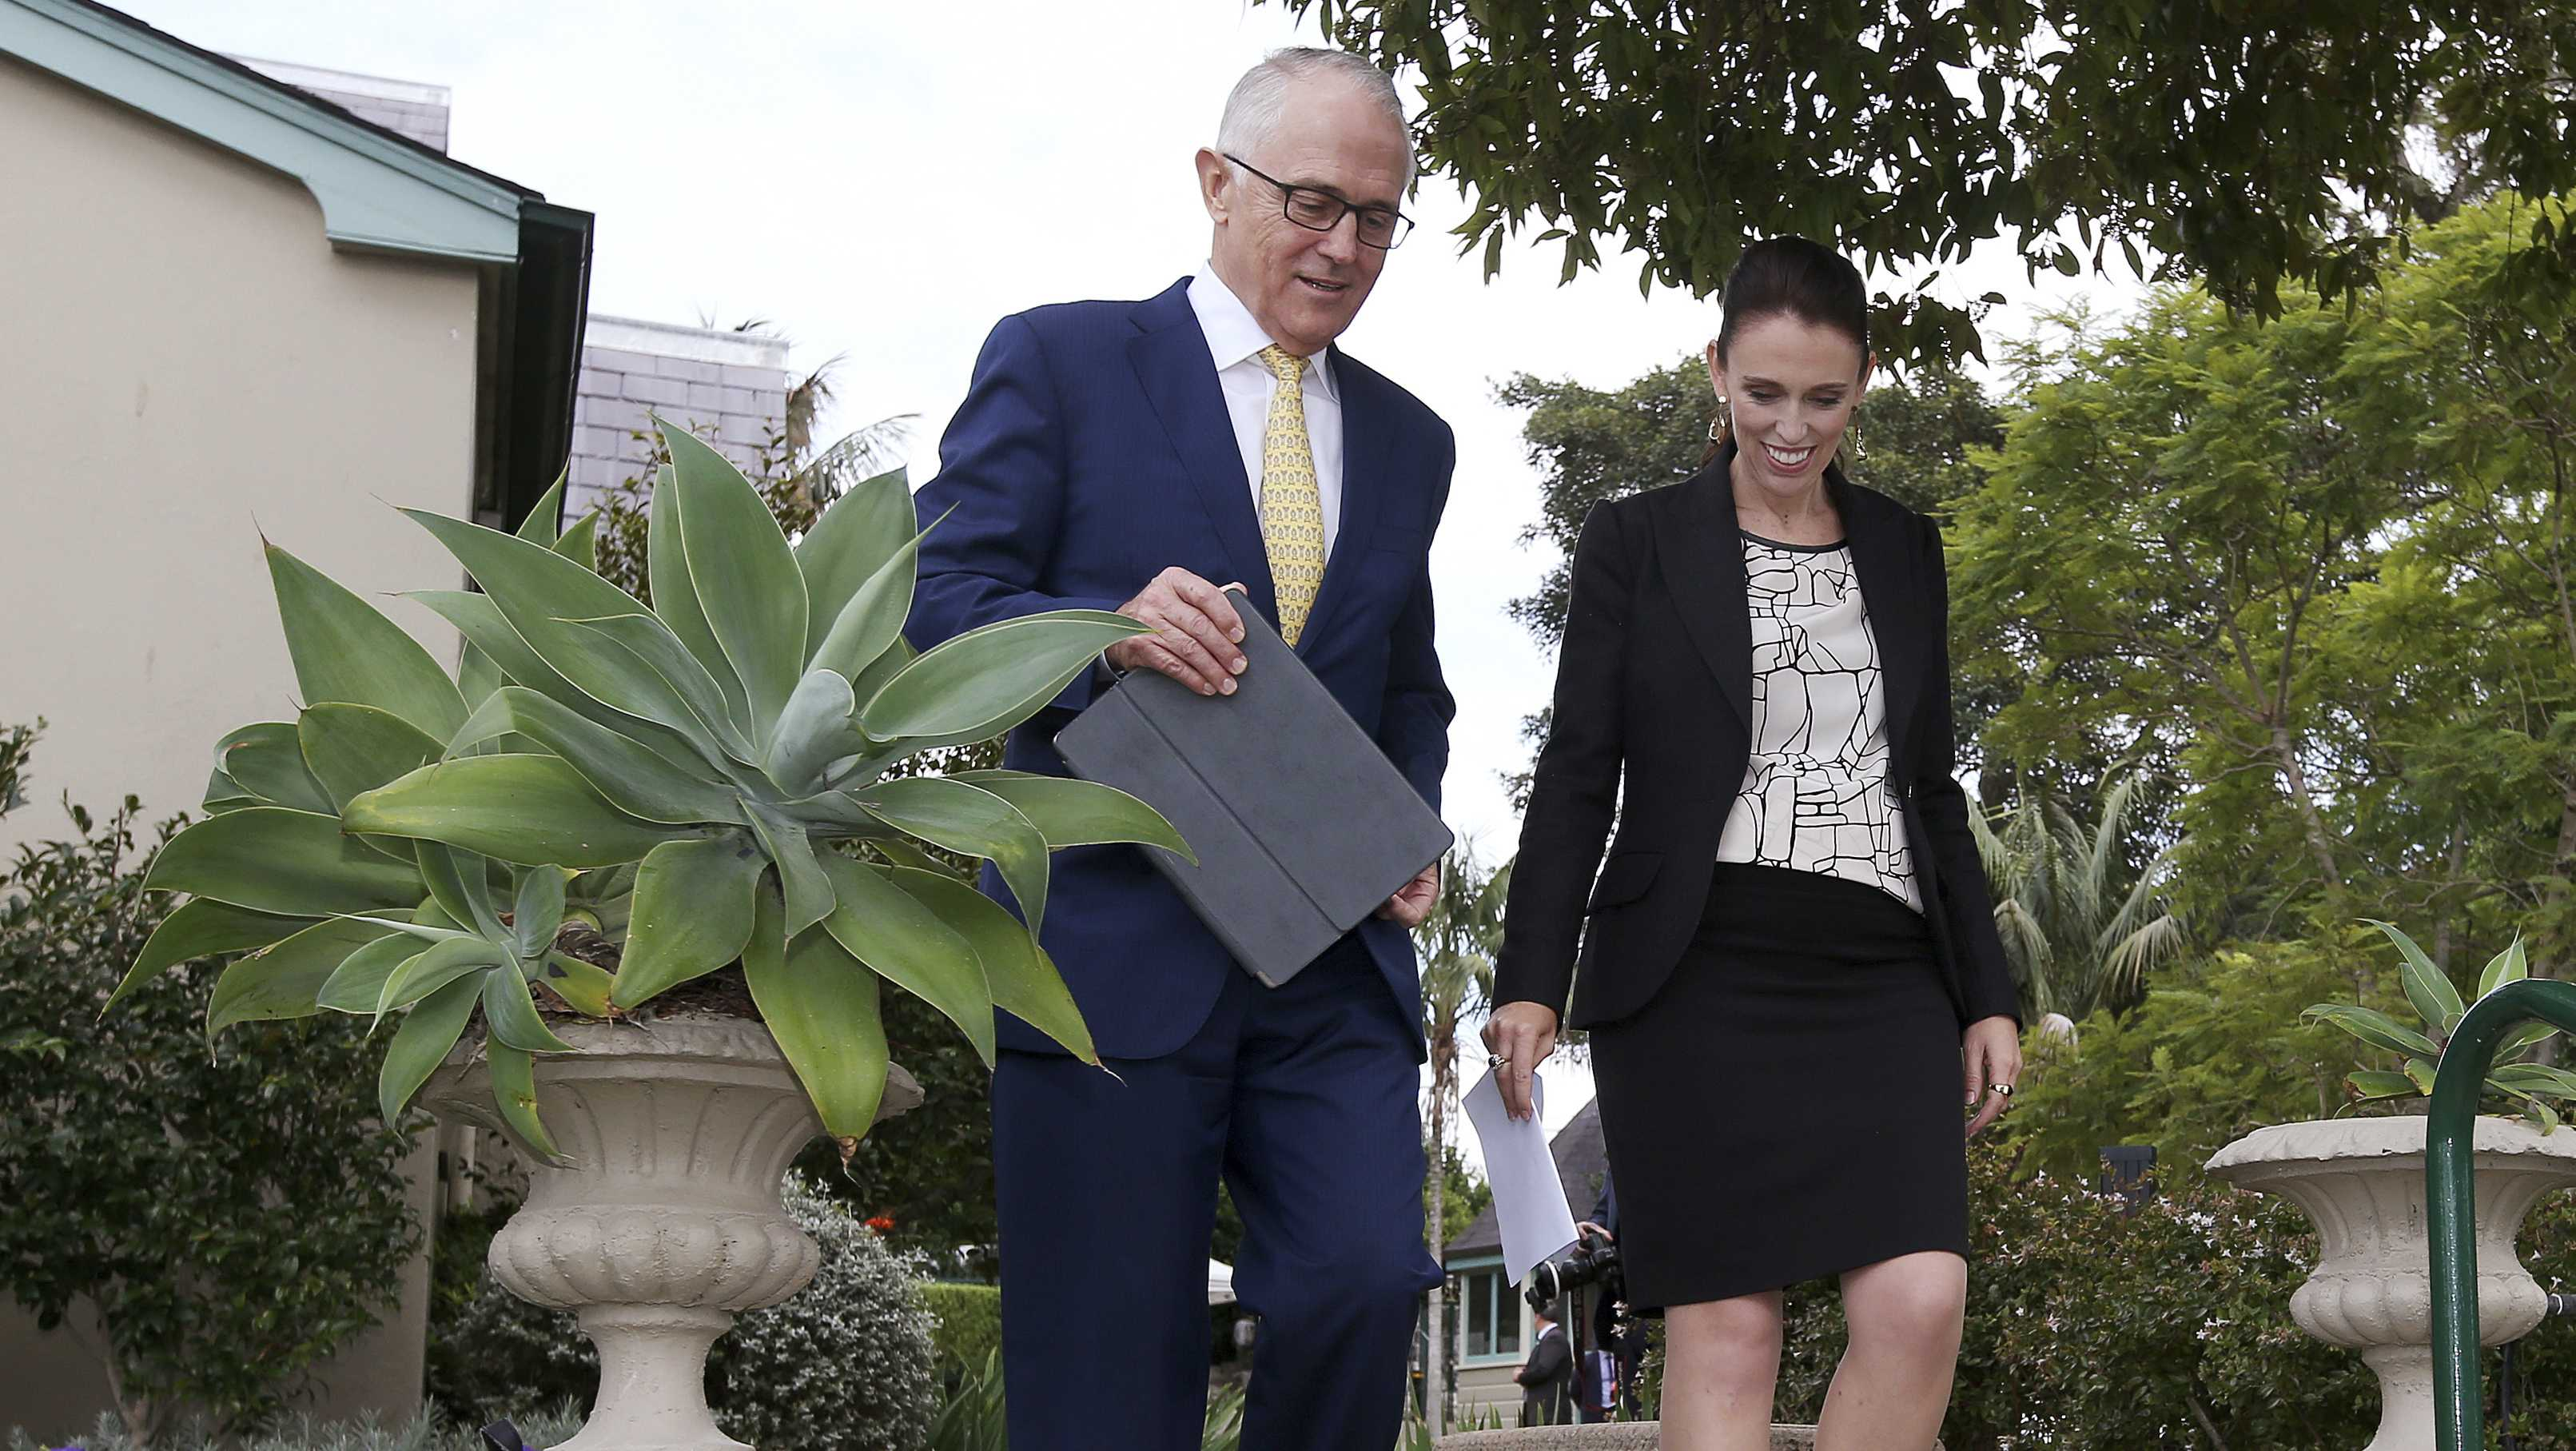 New Zealand's Prime Minister Jacinda Ardern, right, and Australian Prime Minister Malcolm Turnbull arrive to hold a joint press conference in Sydney, Friday, March 2, 2018.